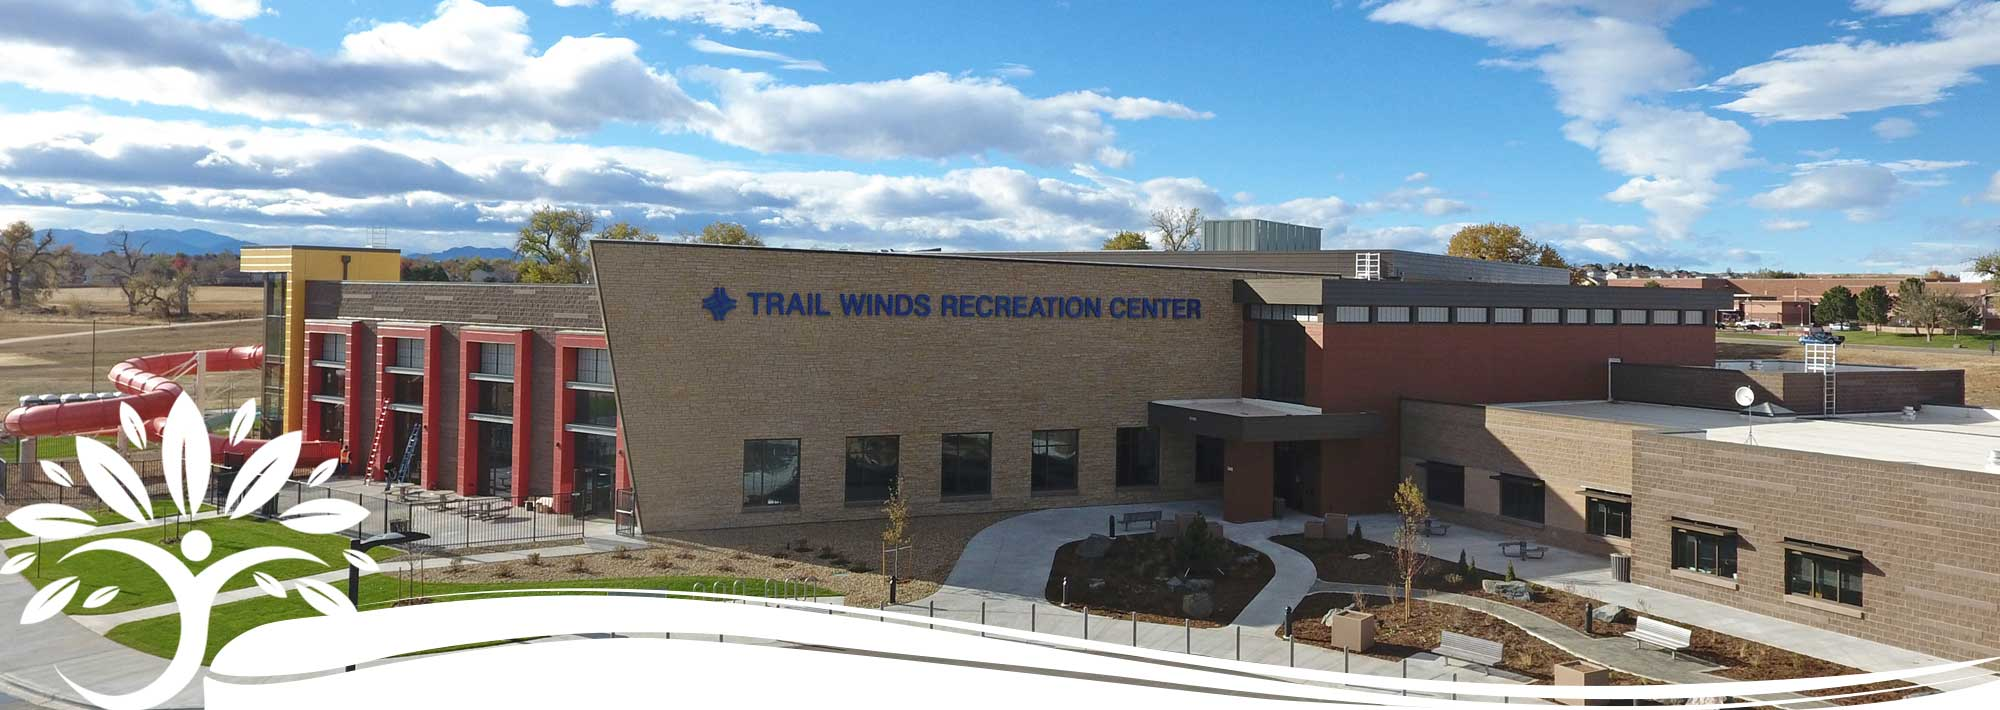 Trail Winds Recreation Center